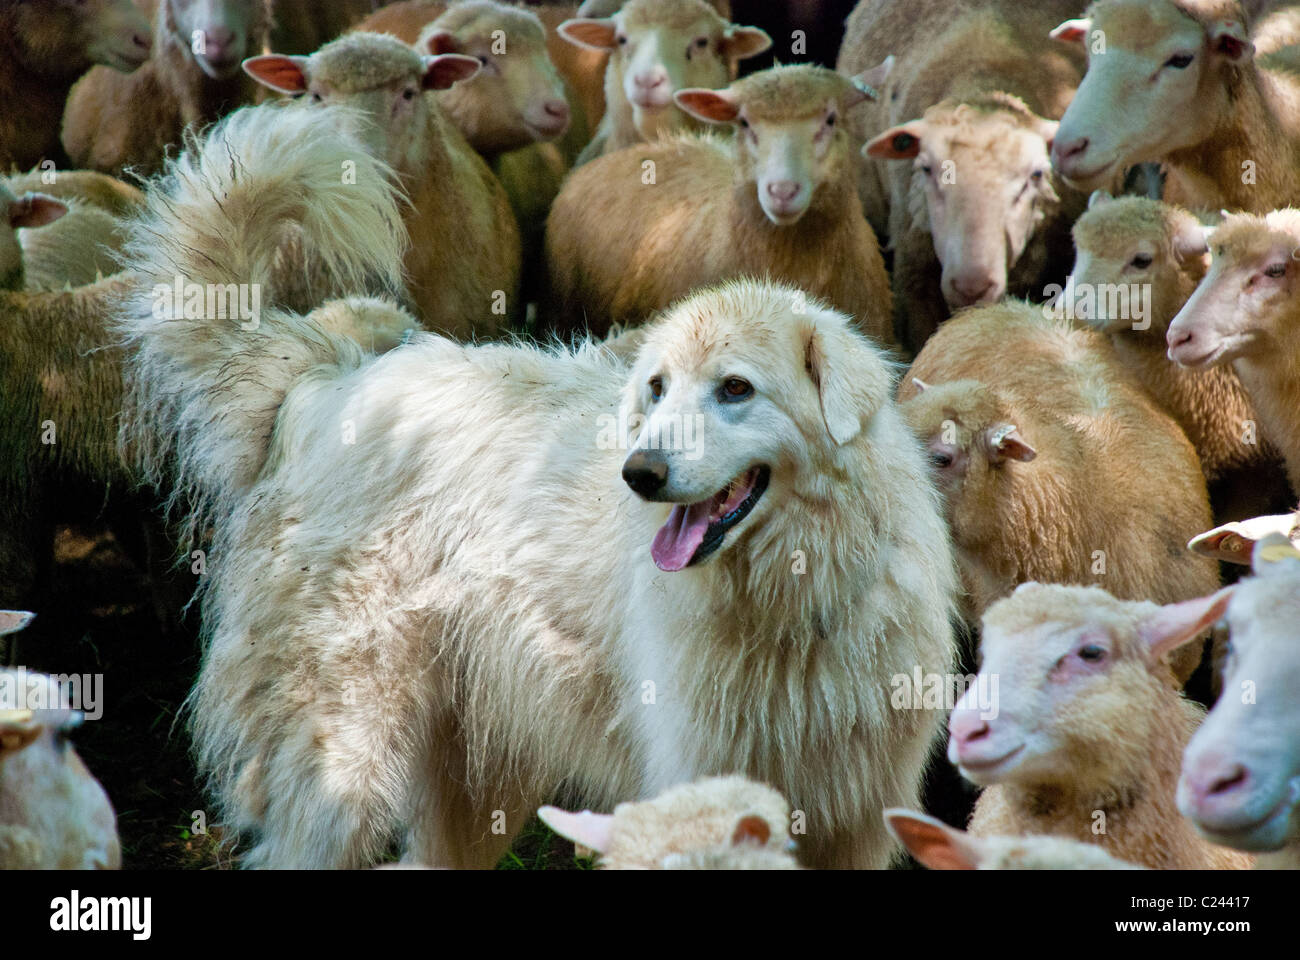 Maremma Sheepdog herding Finn-Dorset sheep, Stone Barns Center for Food and Agriculture, Pocantico Hills, New York, - Stock Image